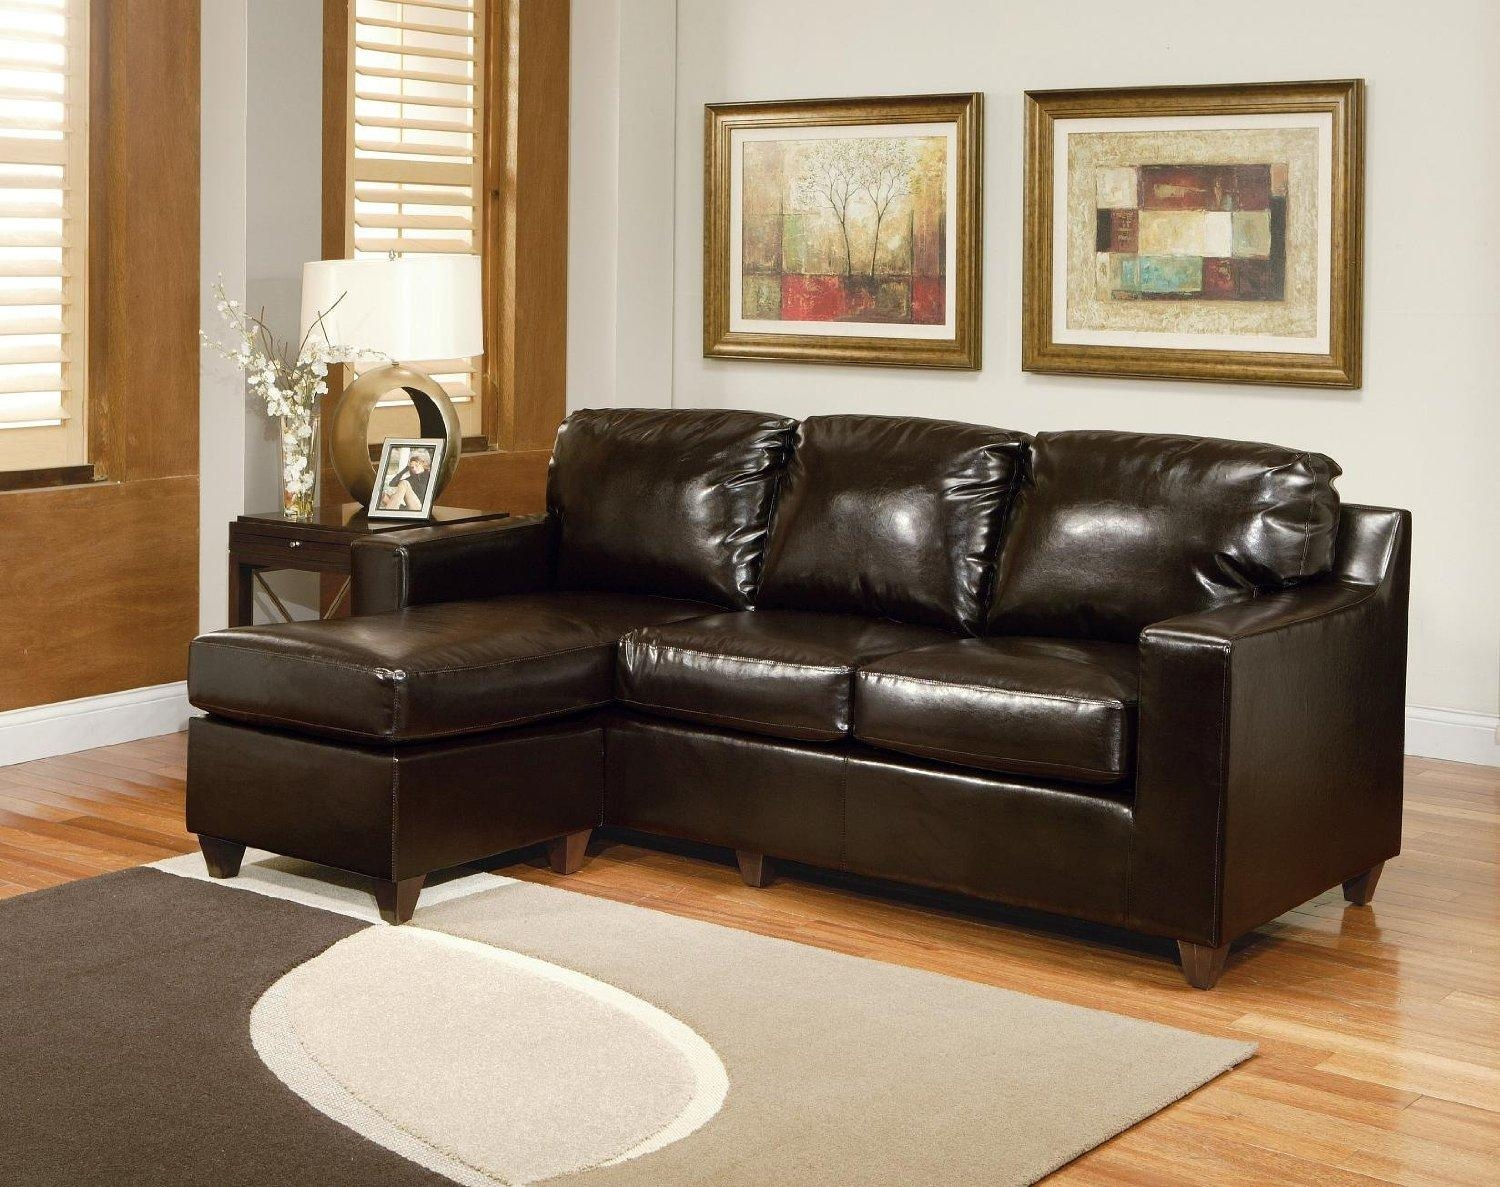 Small Scale Sectional Sofa With Chaise | Sofa Gallery | Kengire In Small Scale Sofas (View 12 of 20)